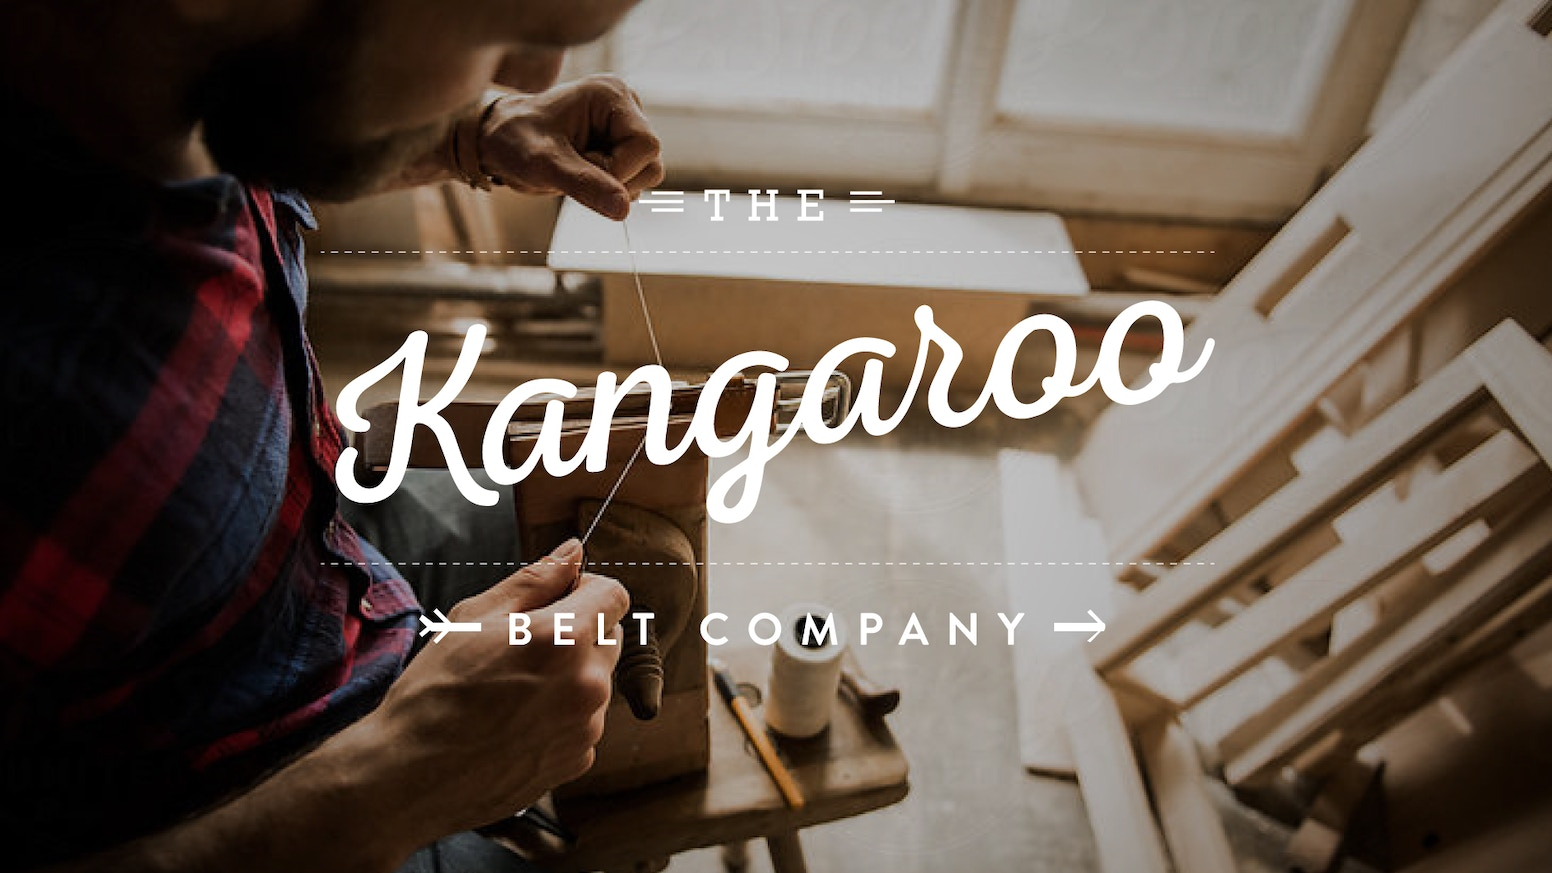 Hand braided Kangaroo leather belts designed and crafted in Australia. Built to last a life time - guaranteed